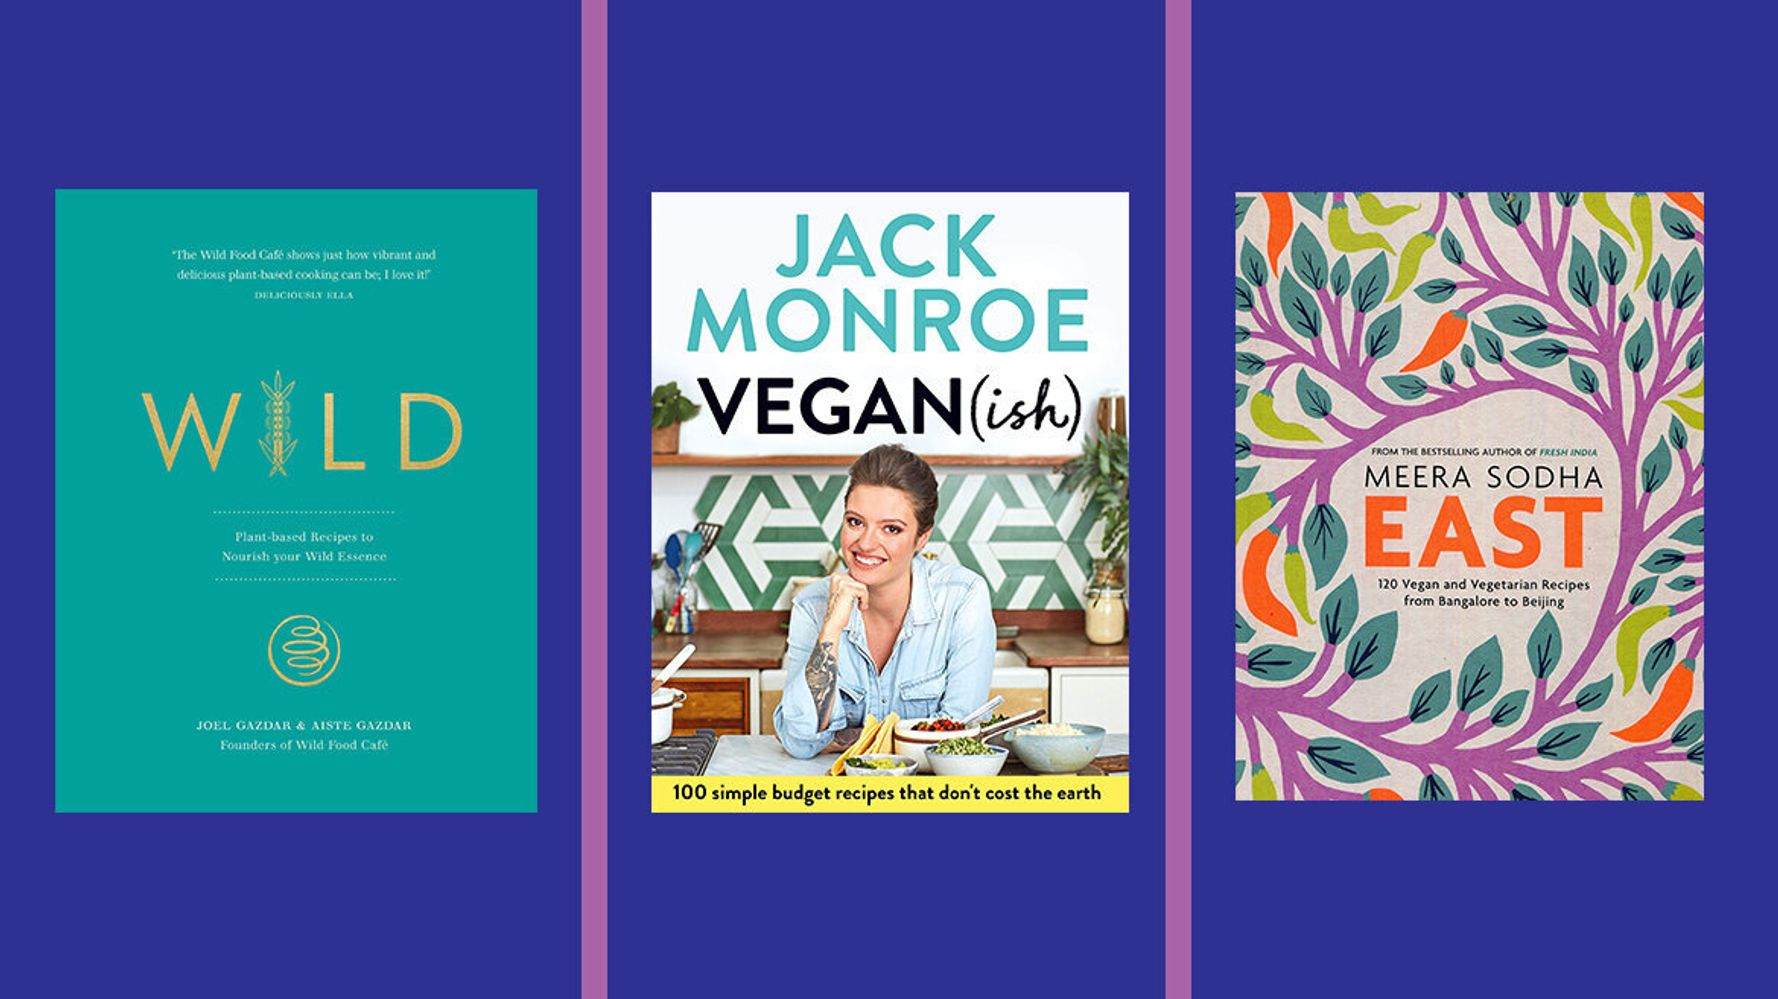 Veganuary: The 10 Best Vegan Cookbooks To Spice Up Your Plant-Based Diet